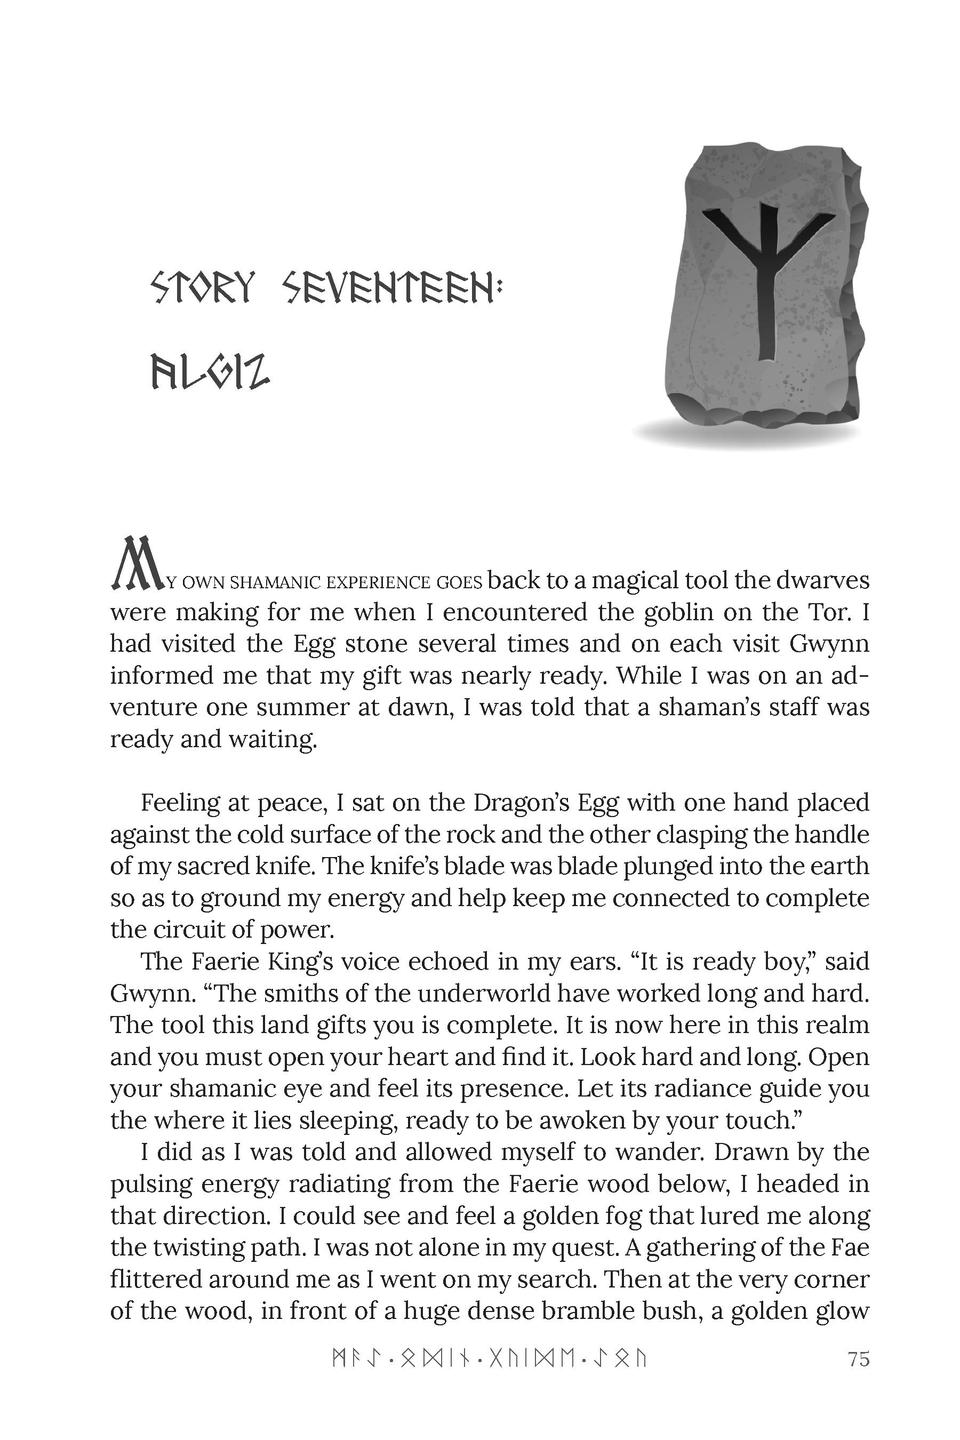 STORY SEVENTEEN   Algiz  M  y own shamanic experience goes back to a magical tool the dwarves were making for me when I en...